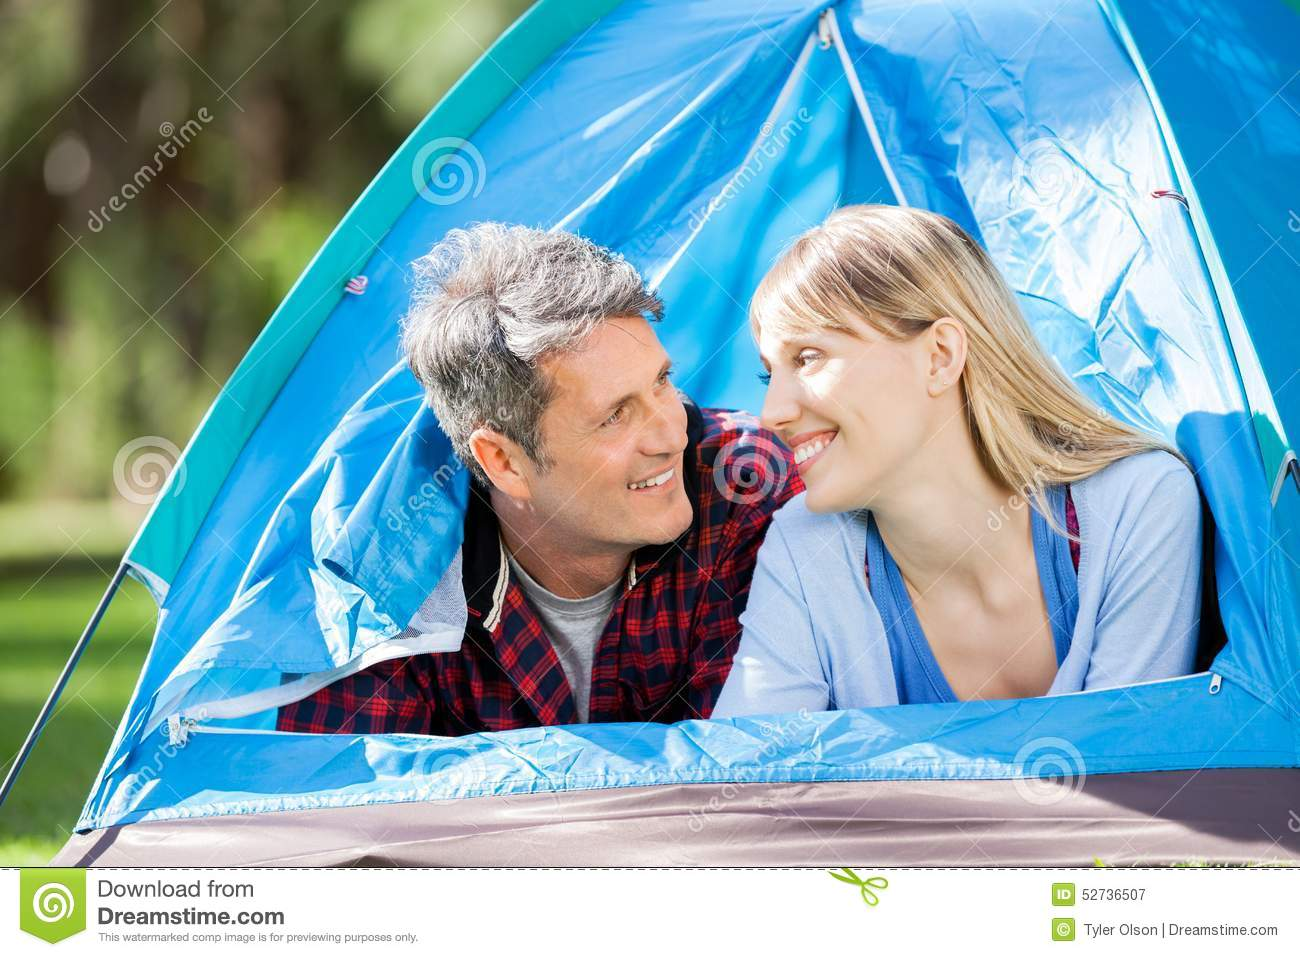 Romantic Couple In Tent At Park